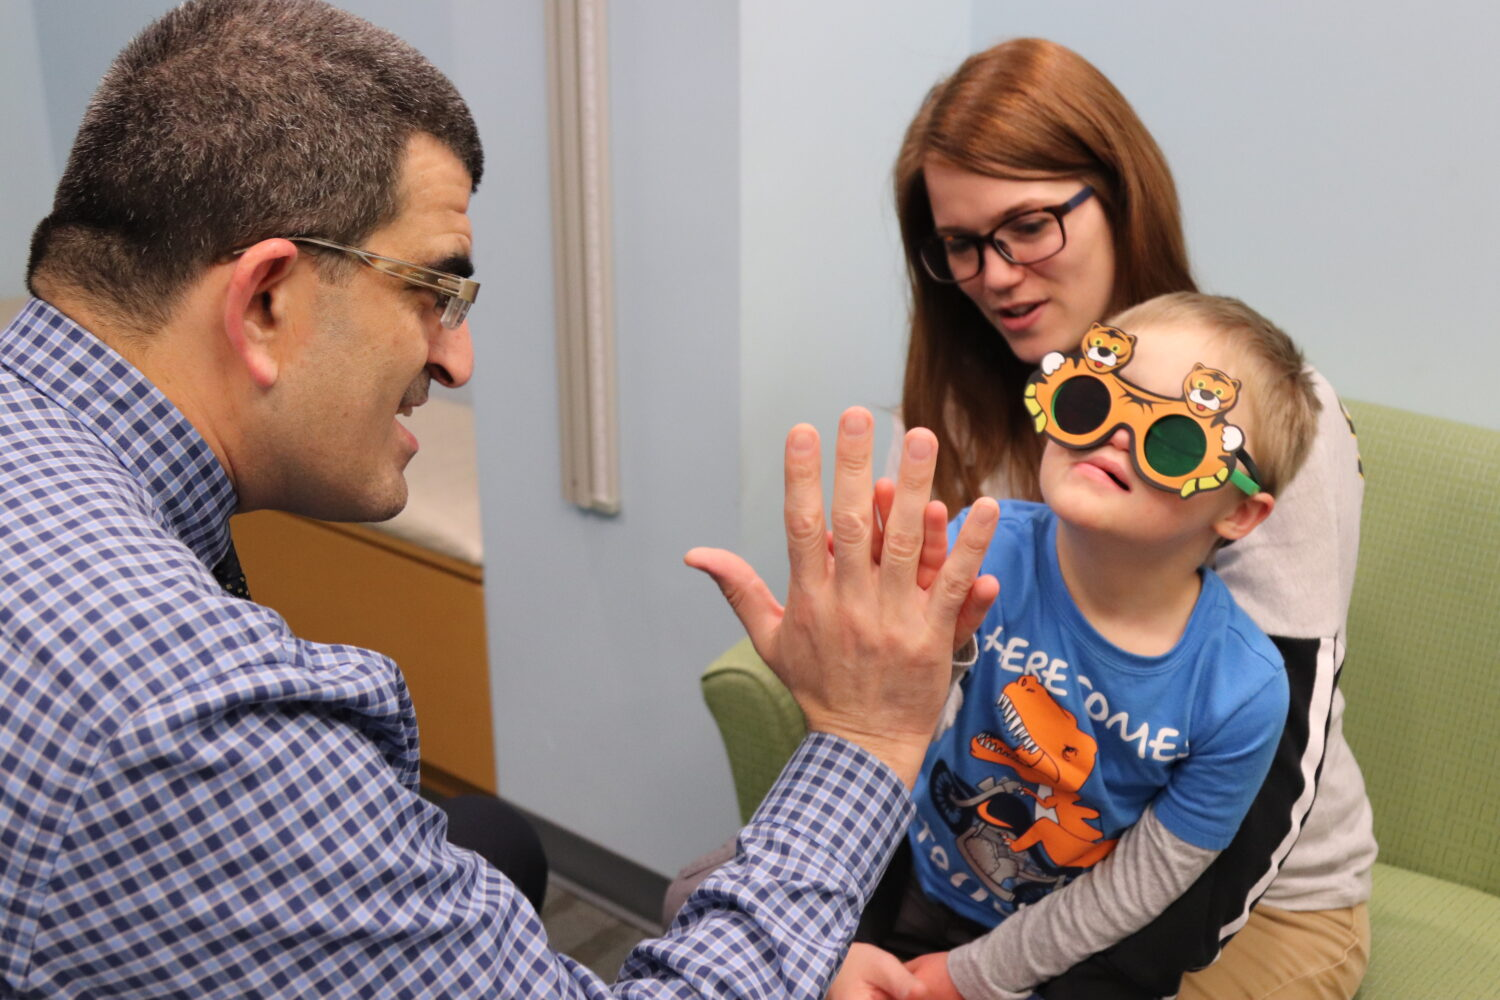 a picture of a doctor examining a child with down syndrome